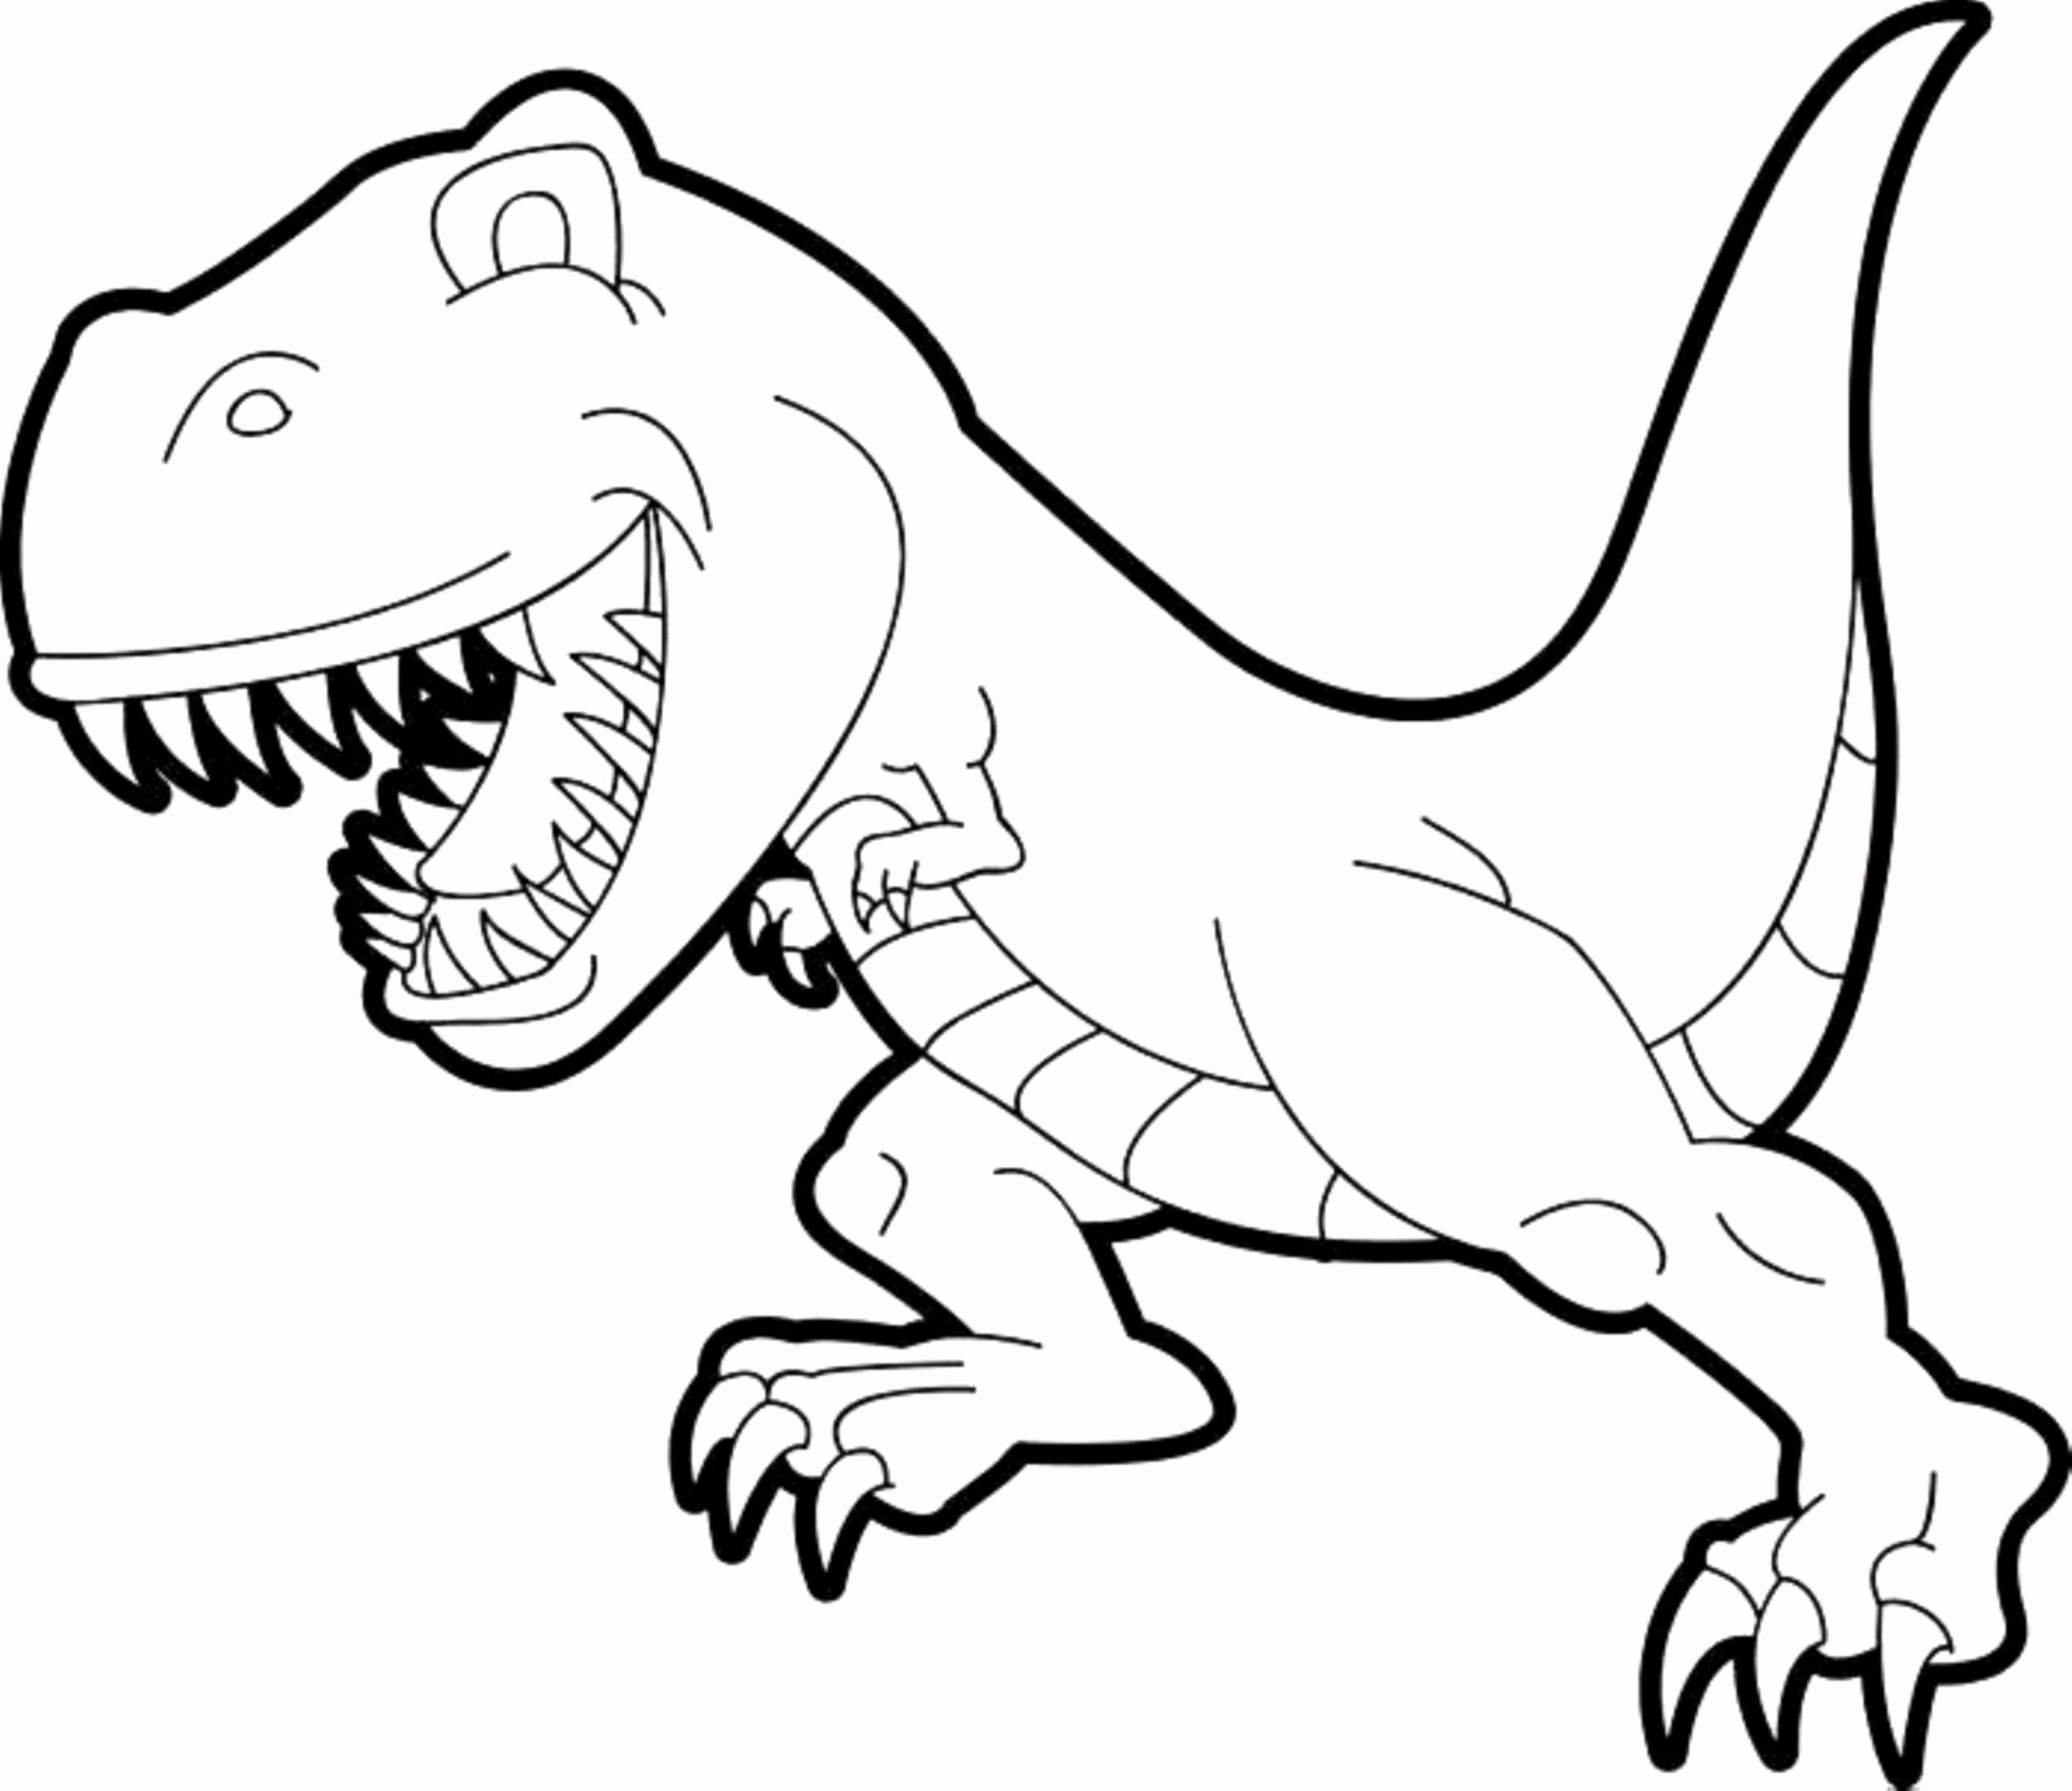 T Rex Printable Coloring Pages Unique Print Download Dinosaur T Rex Coloring Pages For Kids In 2020 Dinosaur Coloring Pages Dinosaur Coloring Animal Coloring Pages